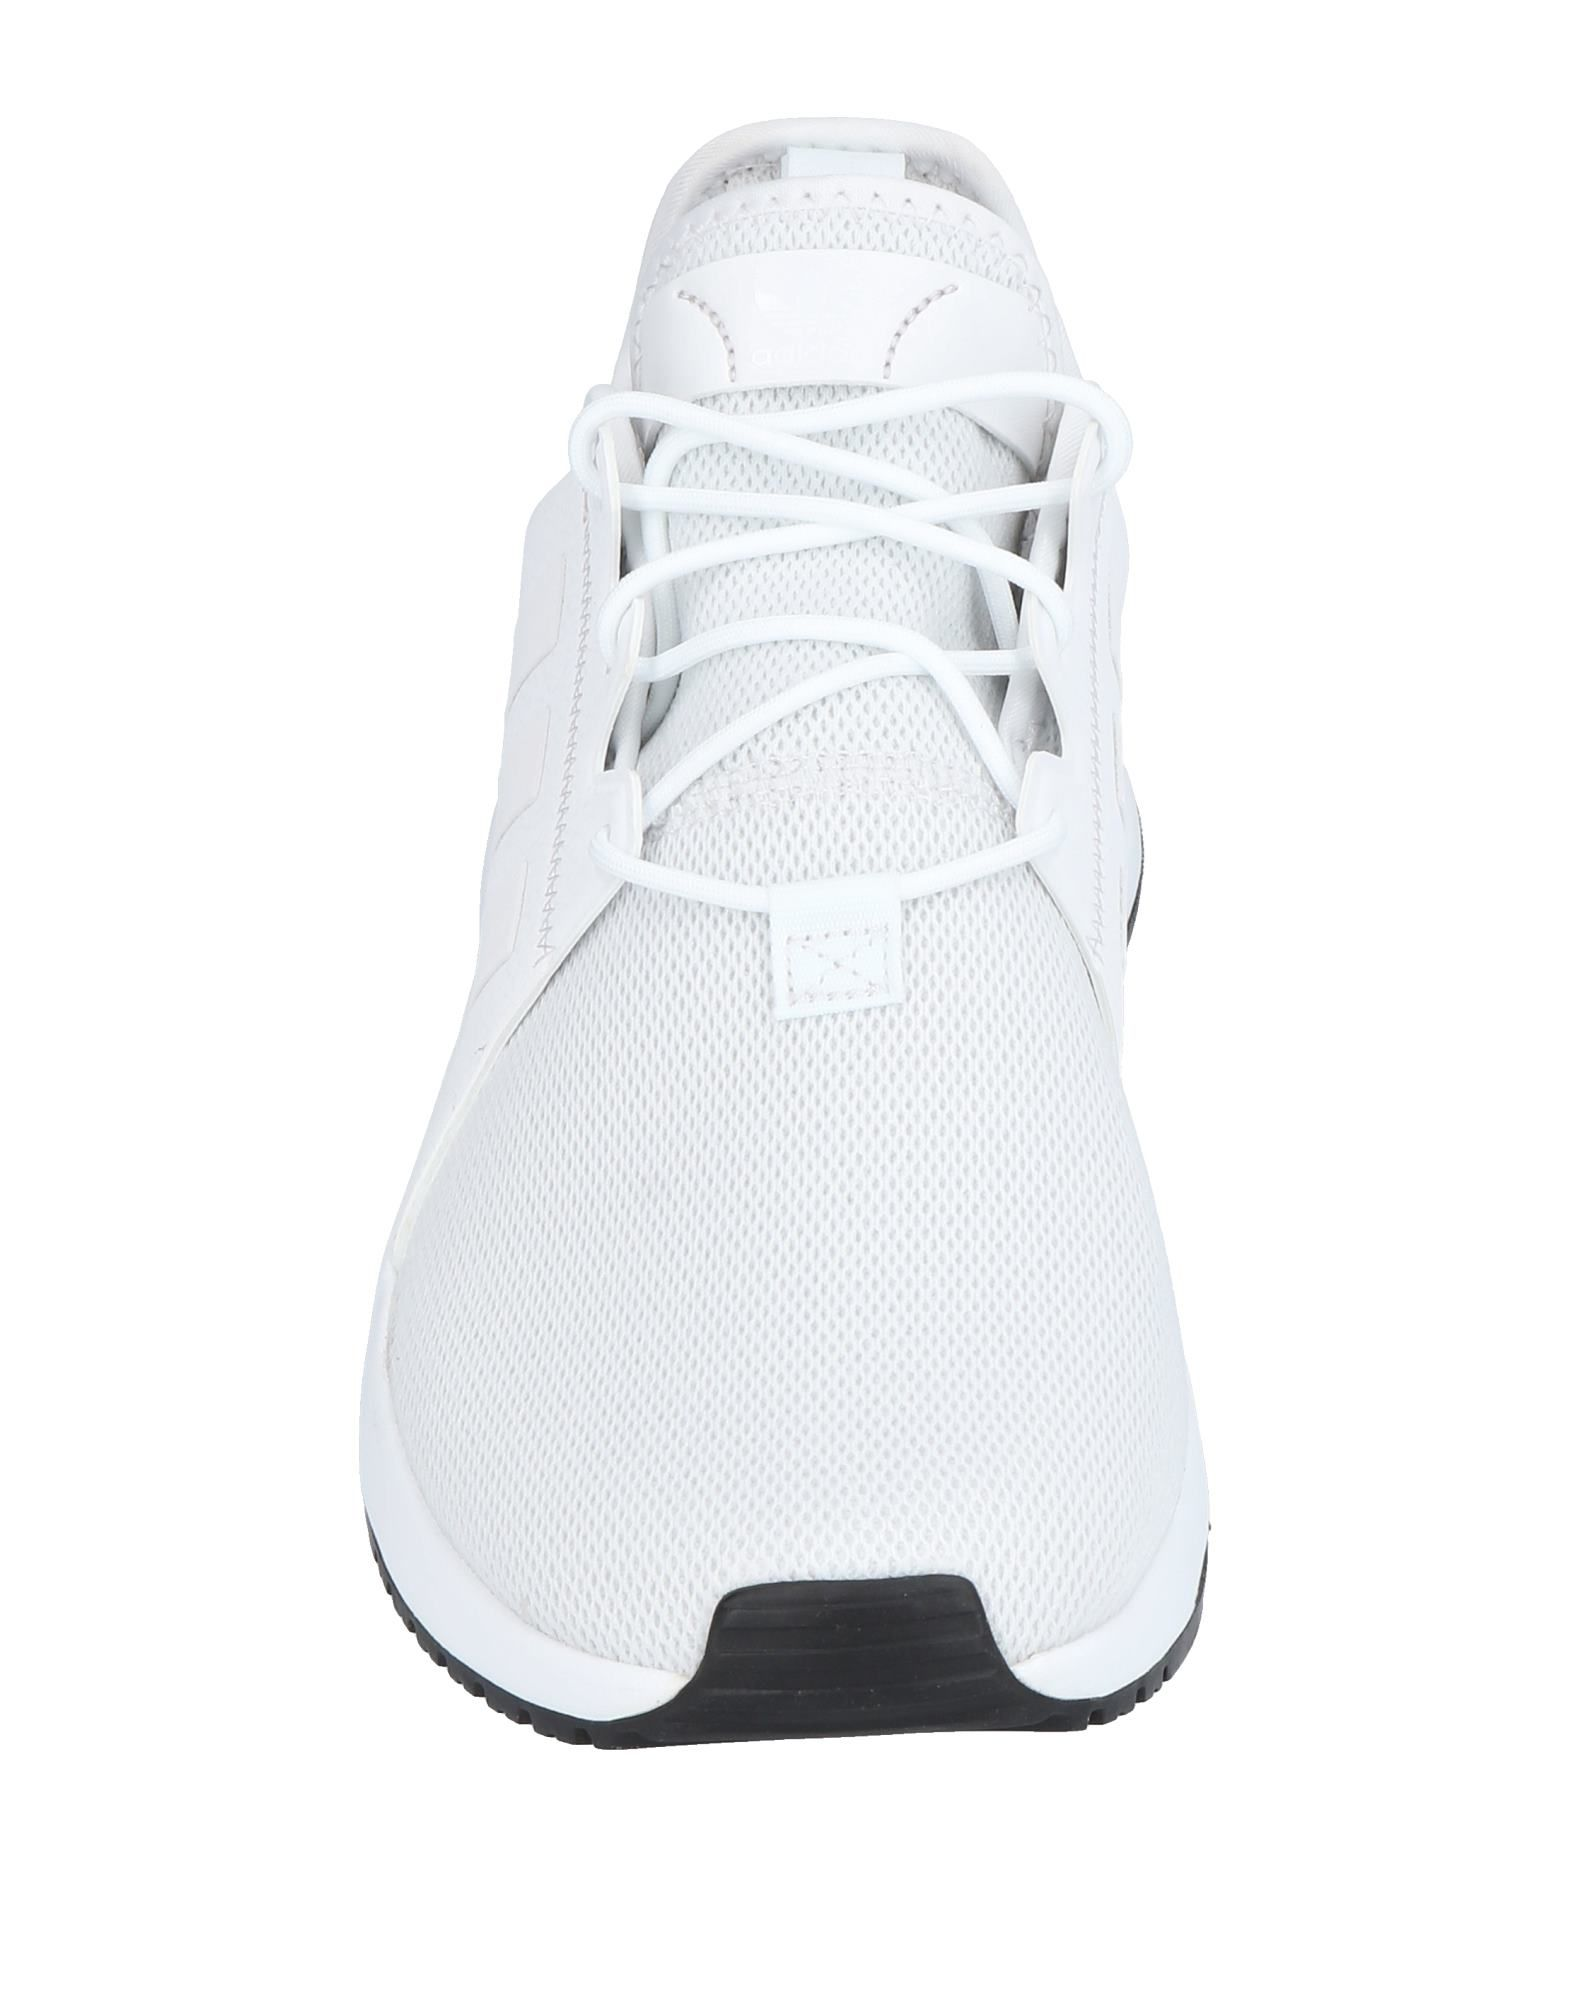 d8a84672f687 ... Adidas Originals Originals Originals Sneakers - Men Adidas Originals  Sneakers online on Australia - 11462386AS 626613 ...